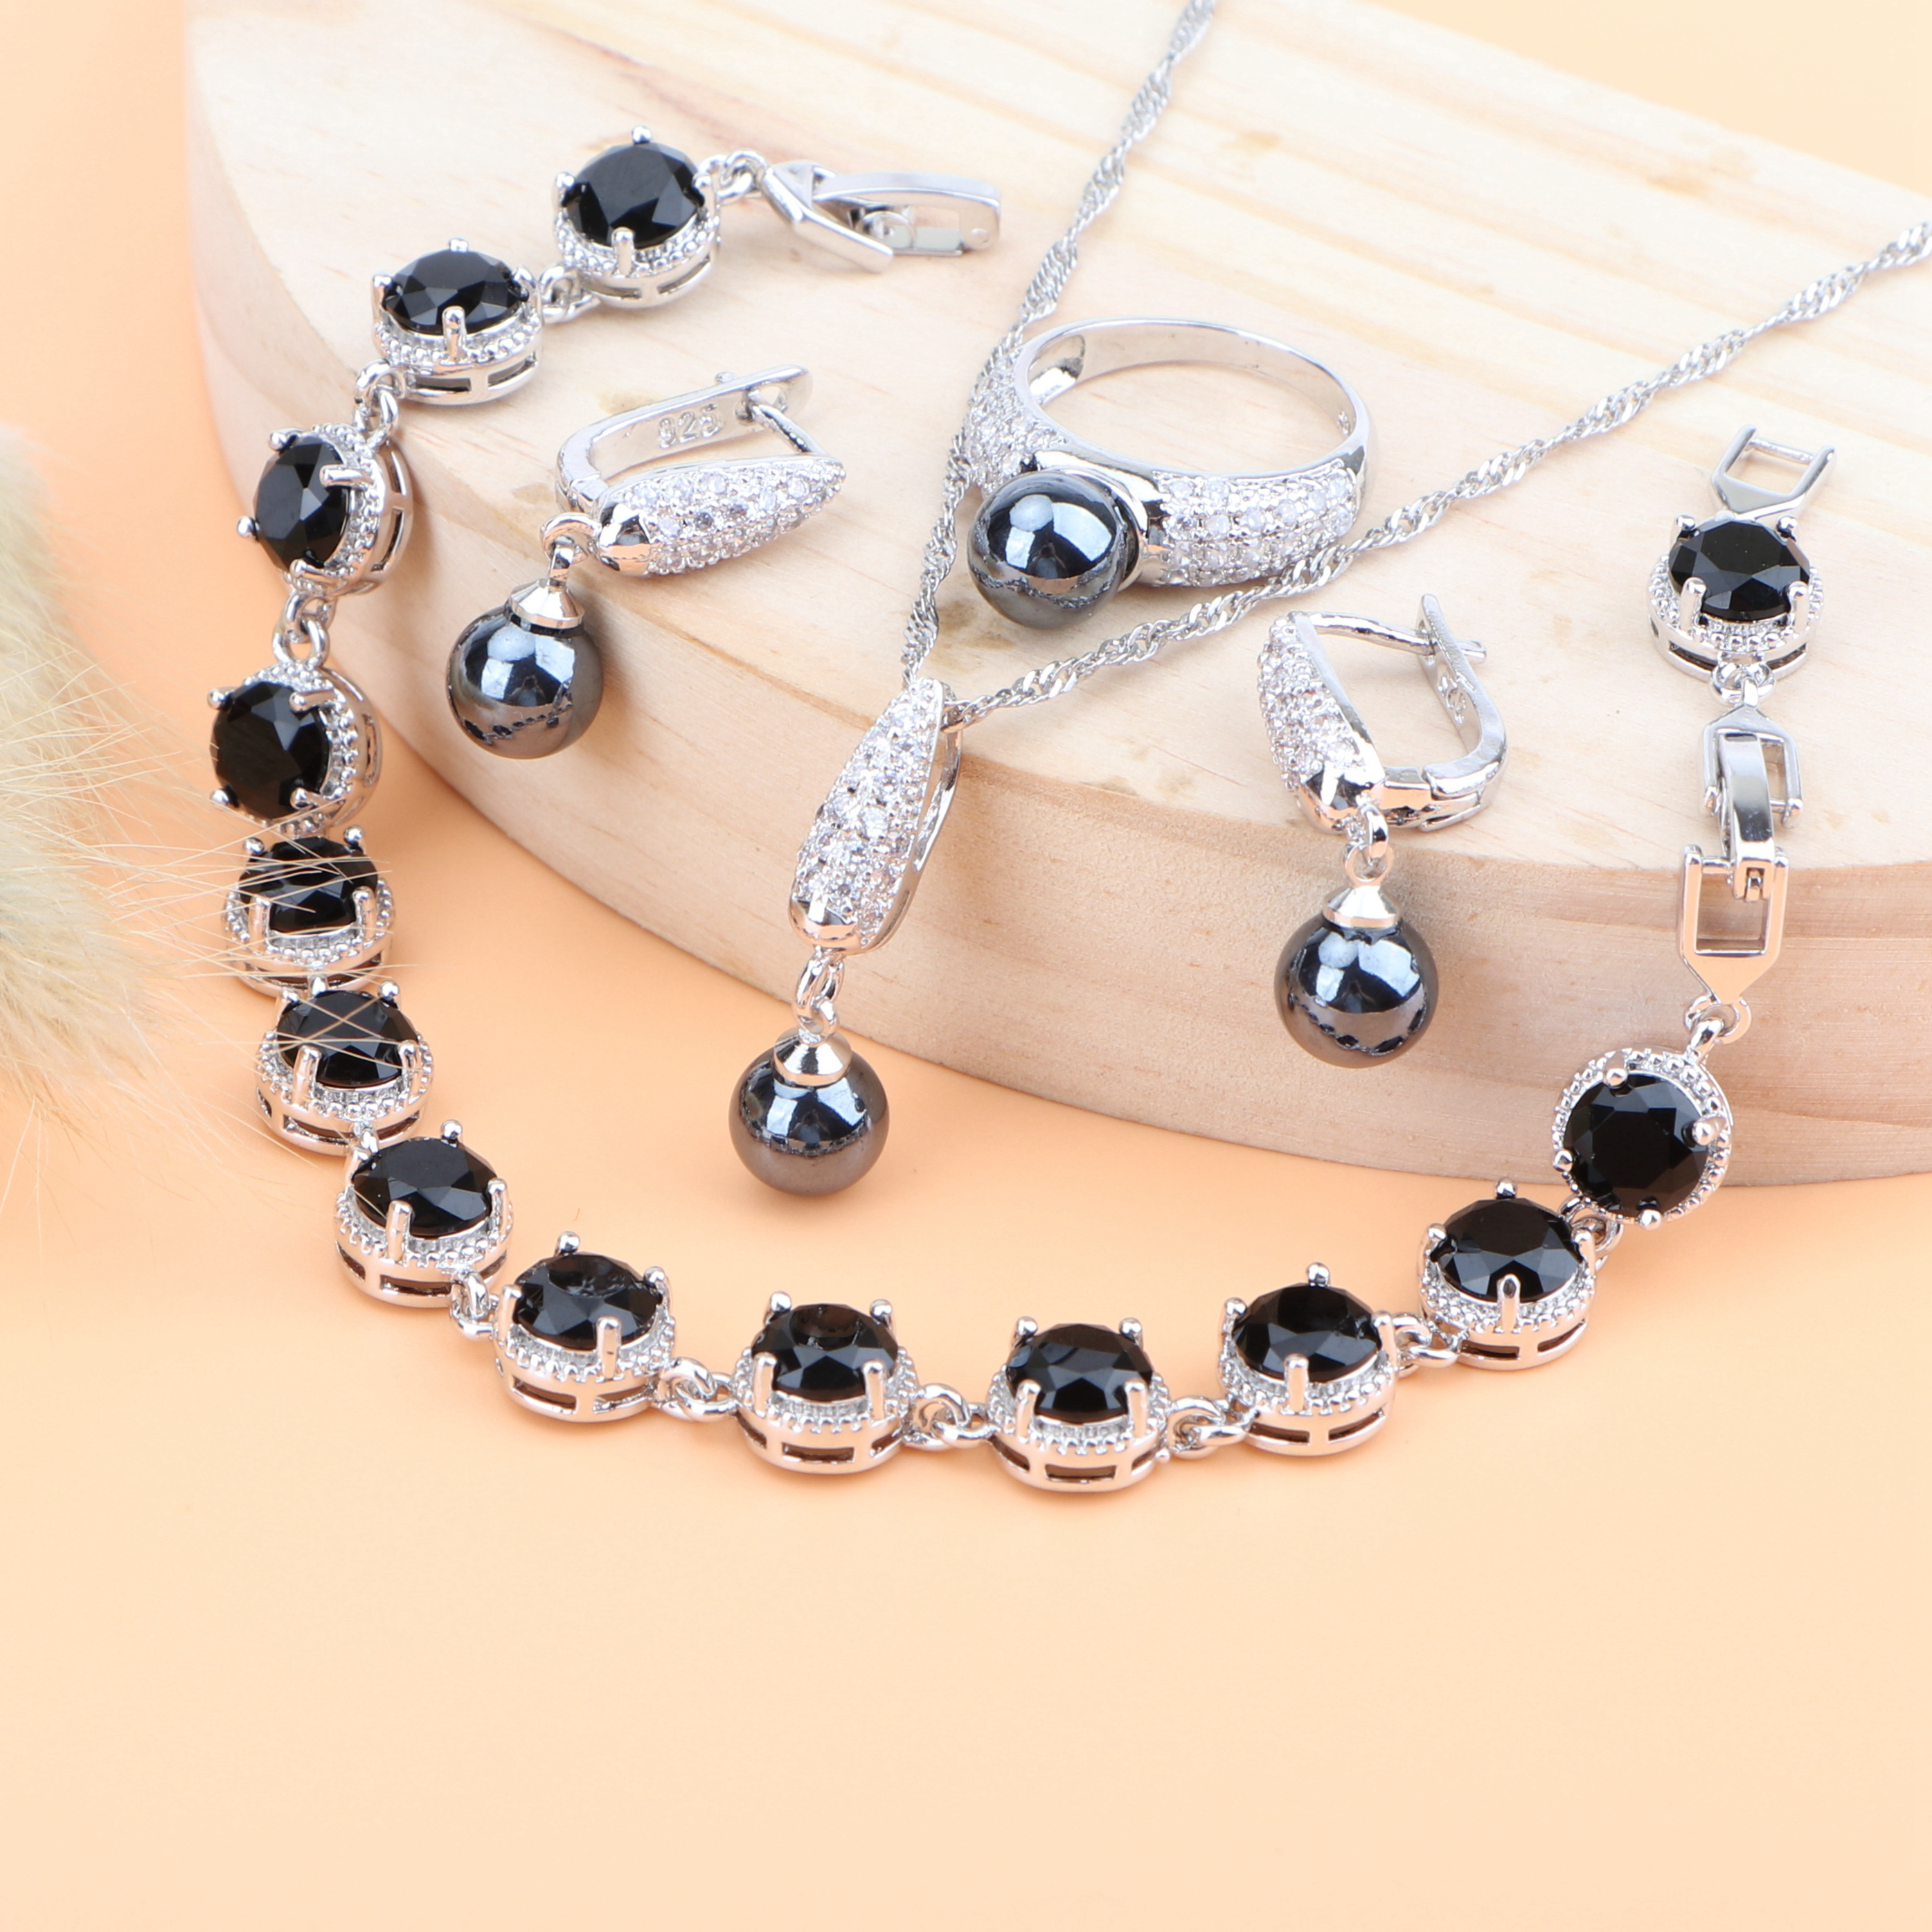 Necklace-Set Bracelets-Rings Pendant Bridal-Jewelry-Sets Pearls Silver Black Women 925 title=